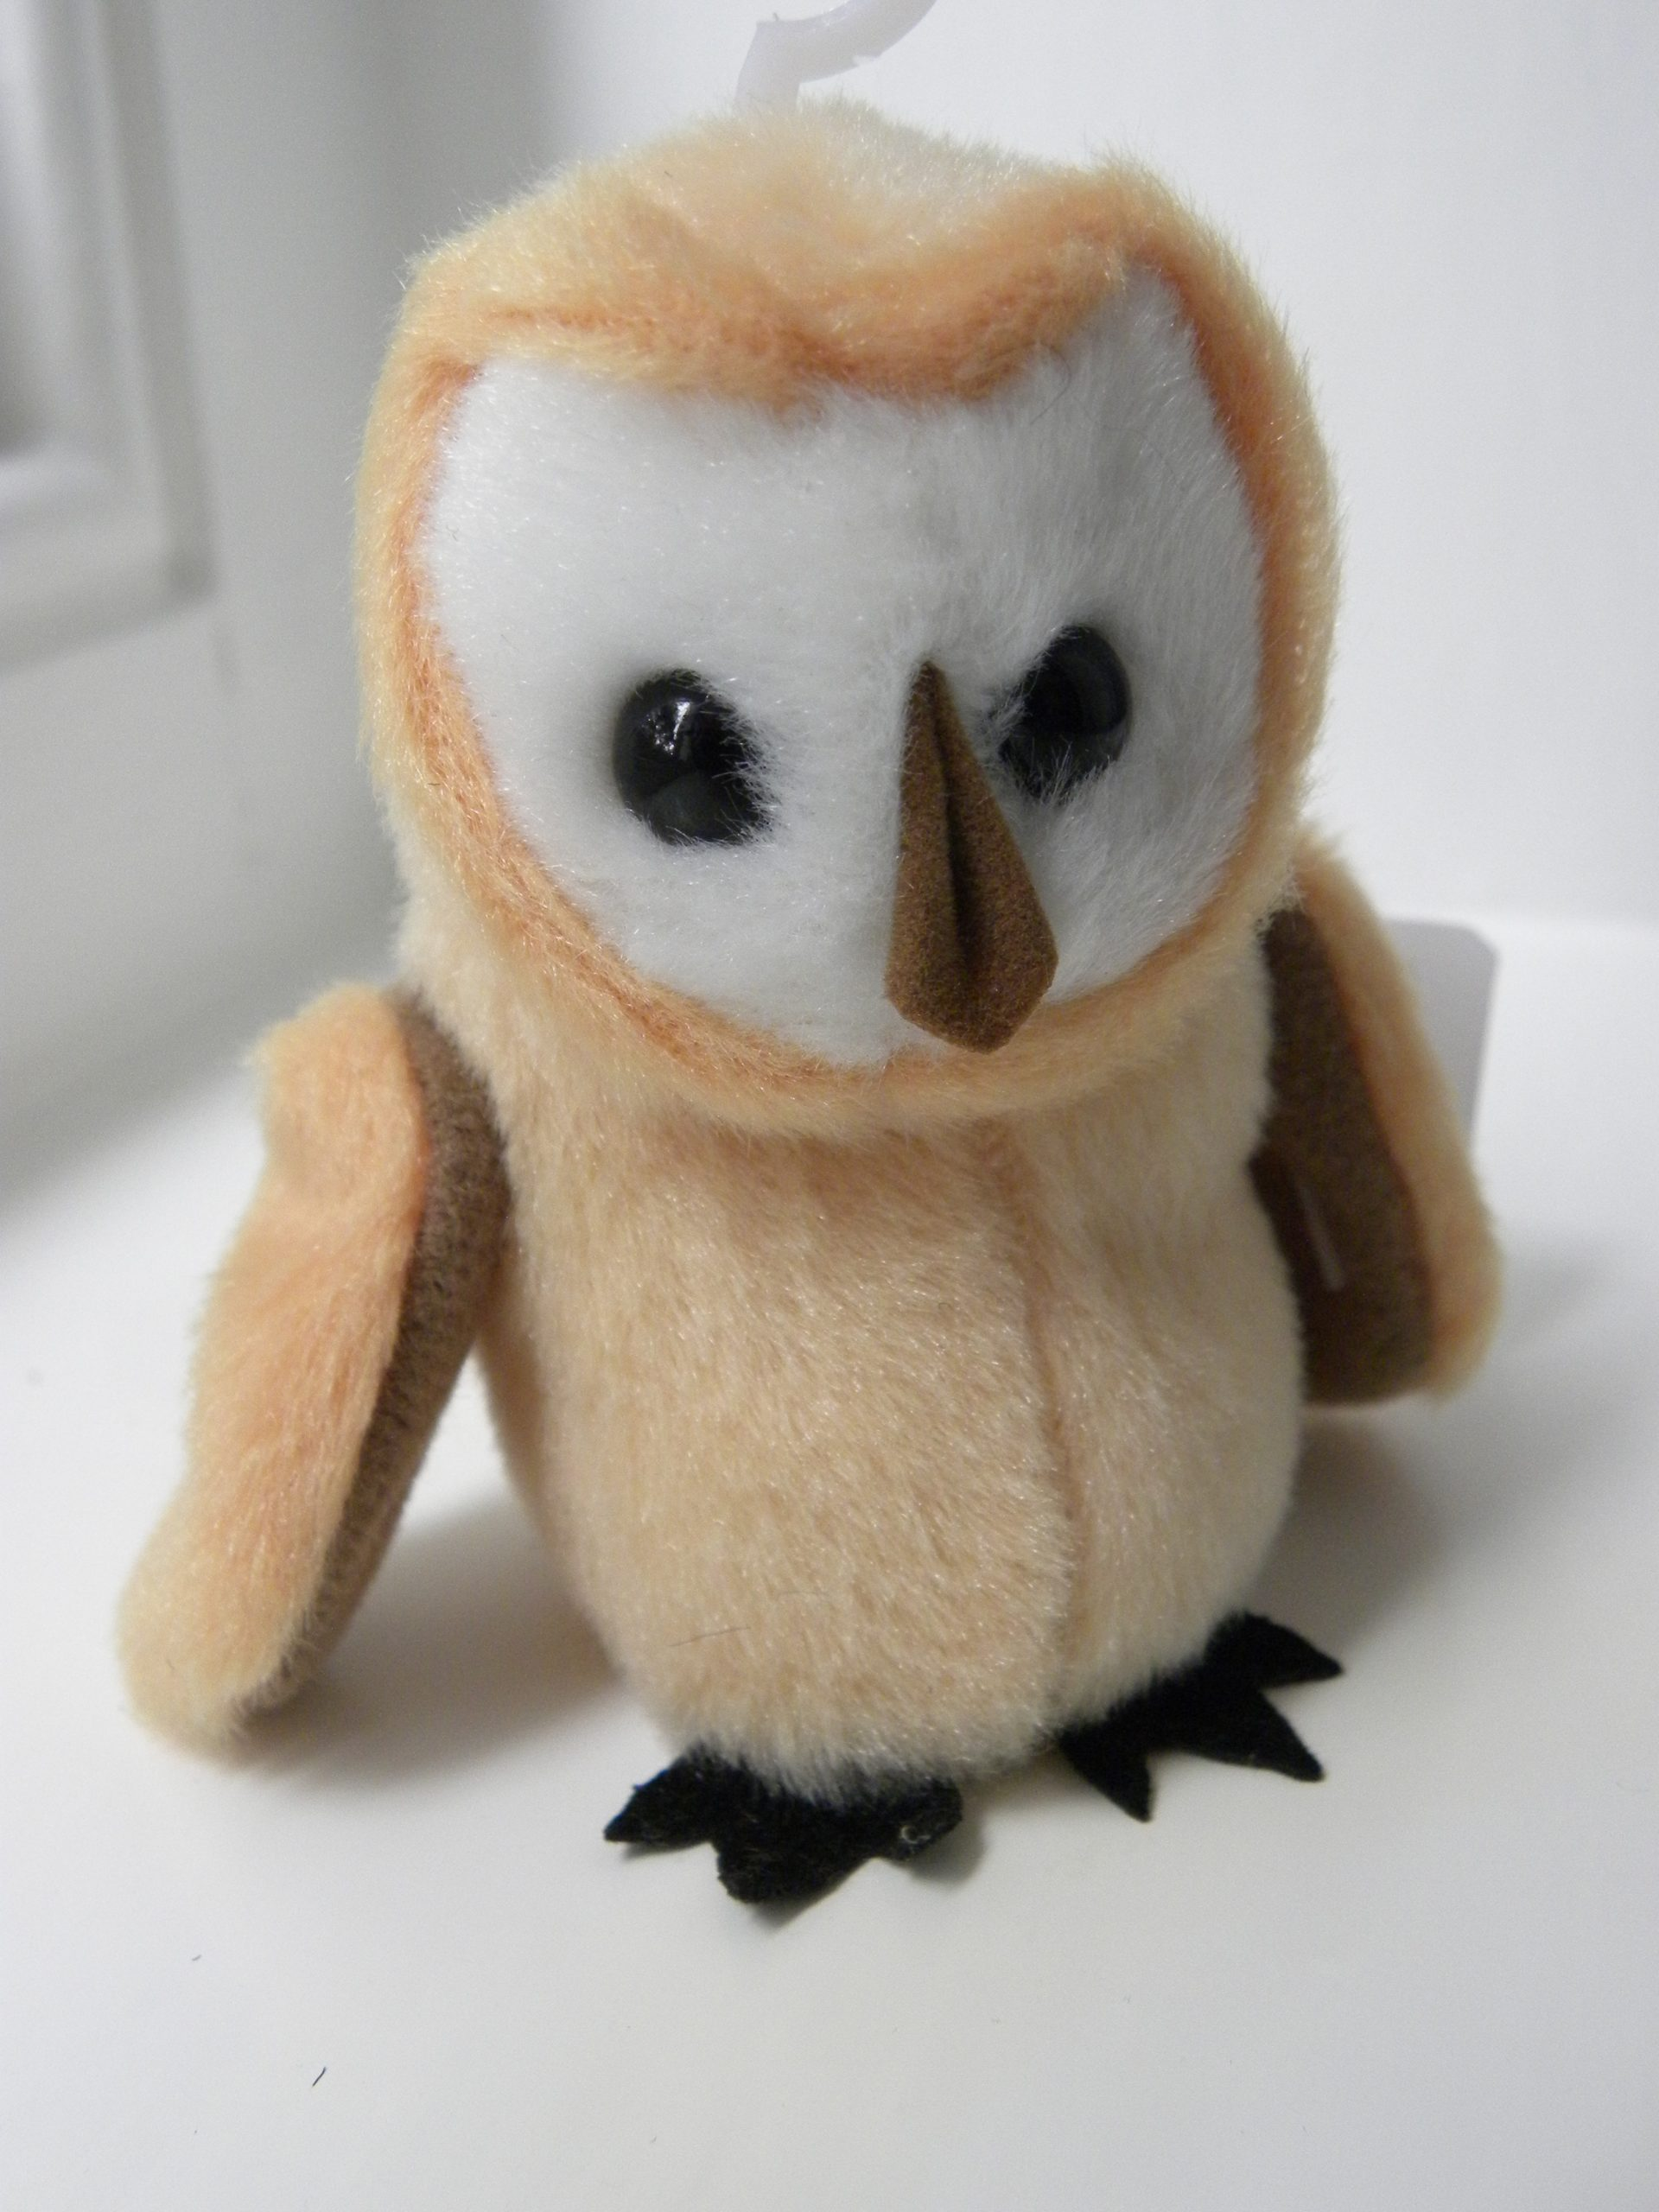 The Puppet Company - Finger Puppet - Barn owl